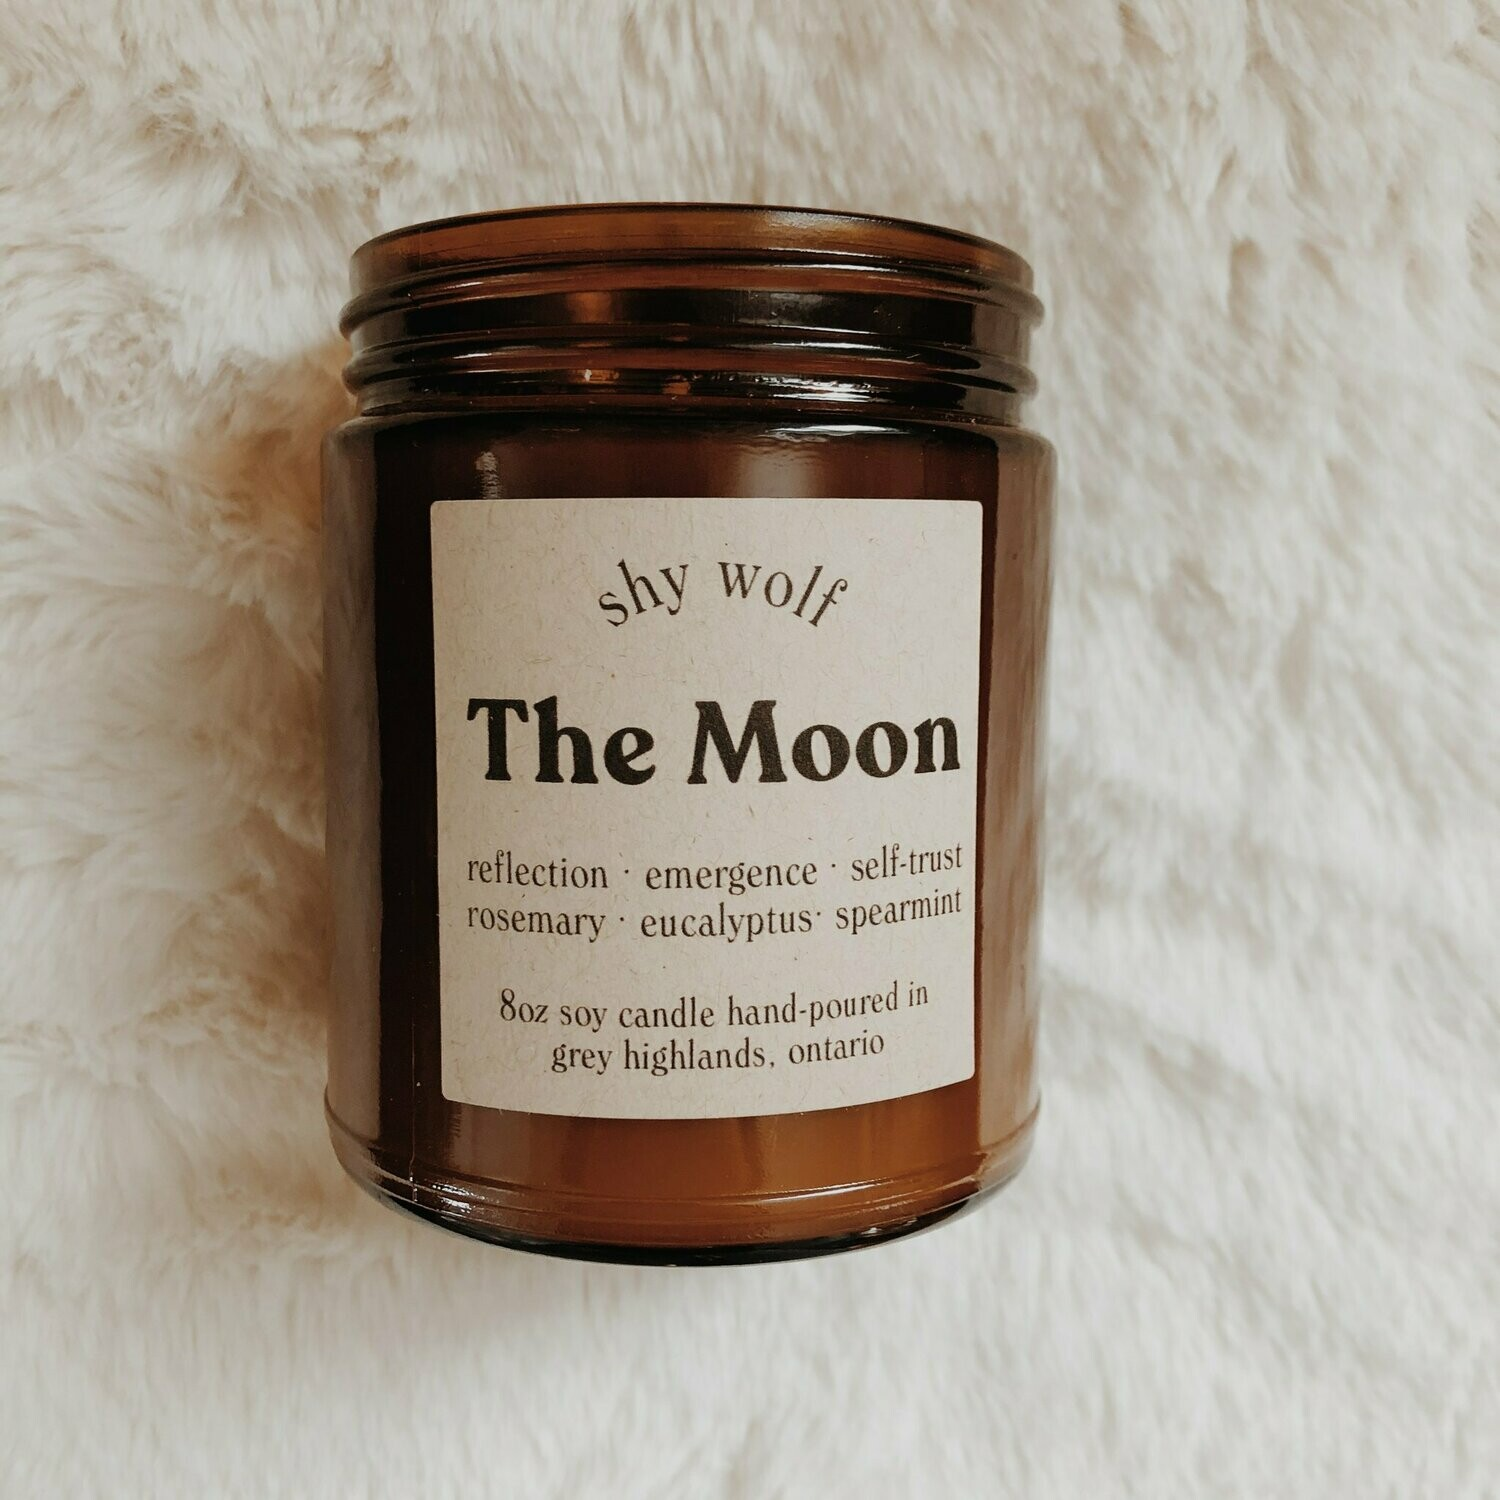 Shy Wolf Candles - The Moon